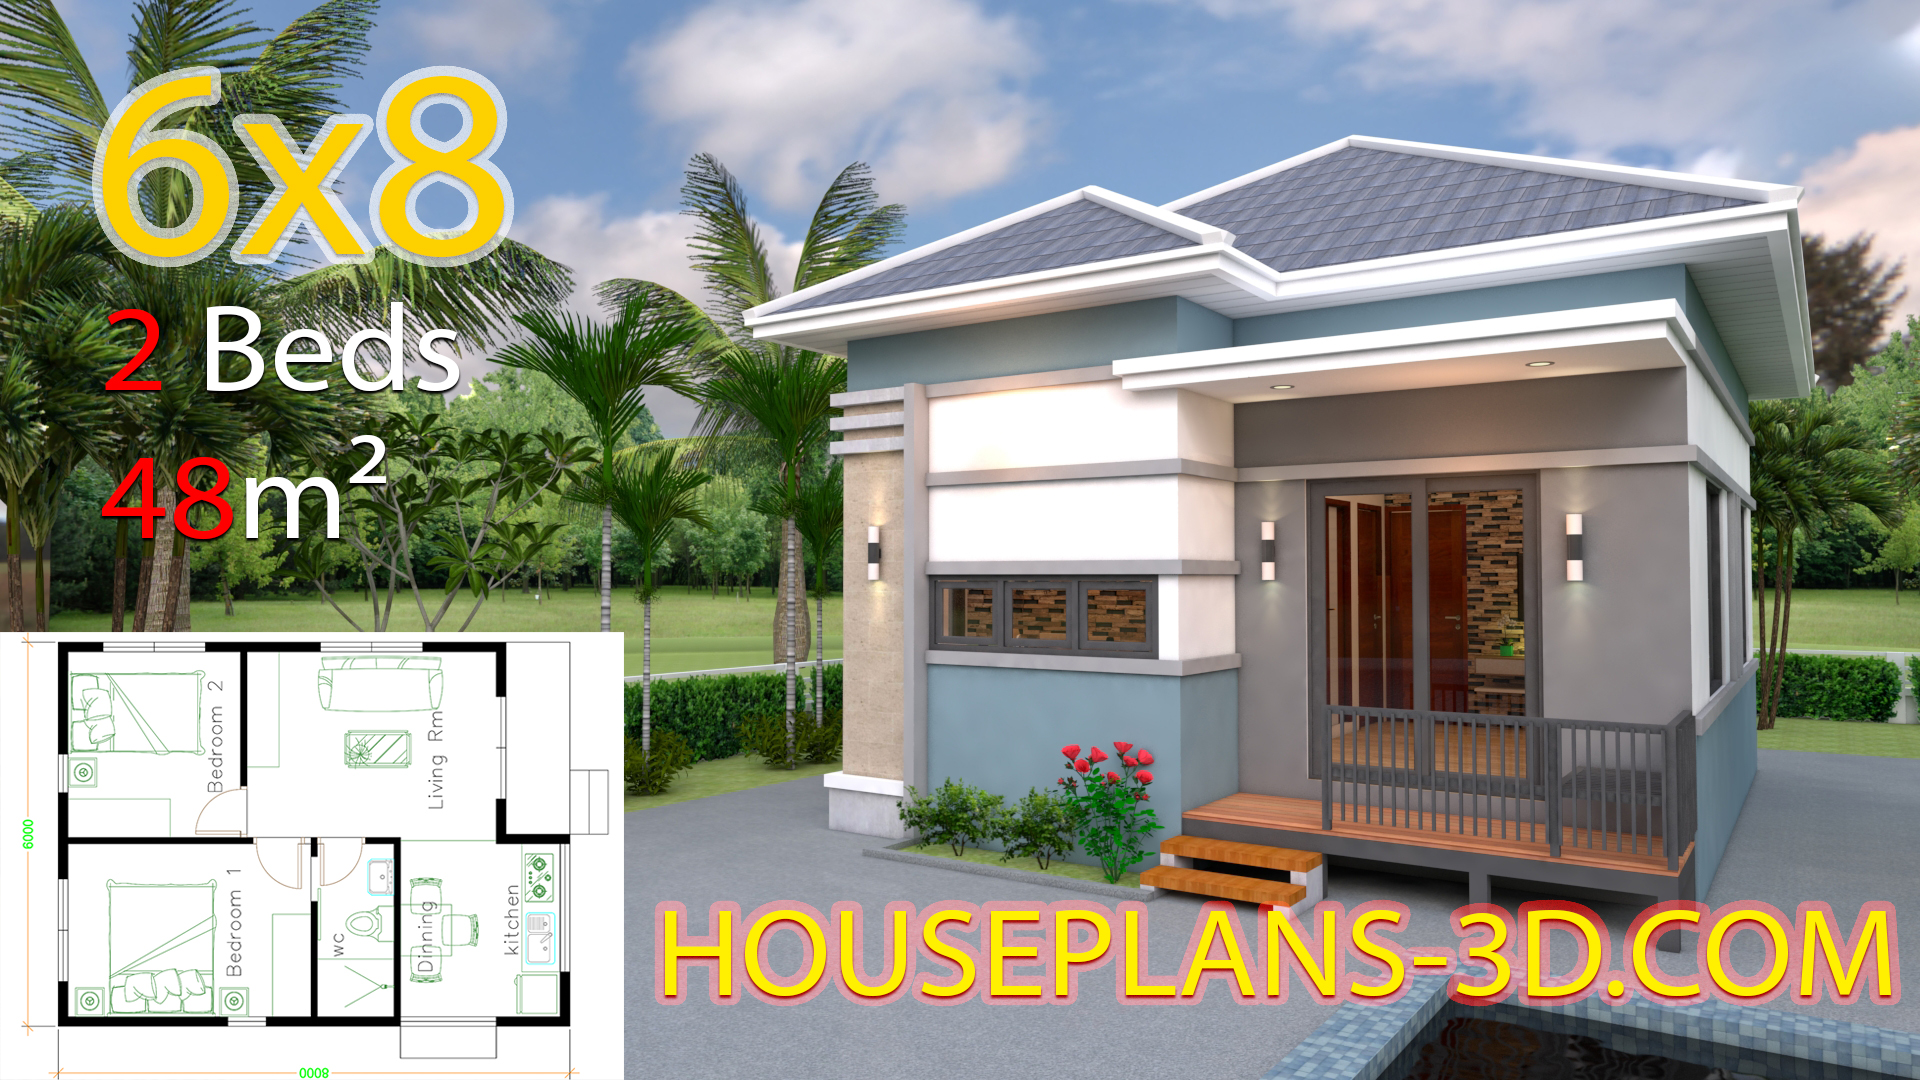 House Design Plans 6x8 with 2 Bedrooms - House Plans 3D